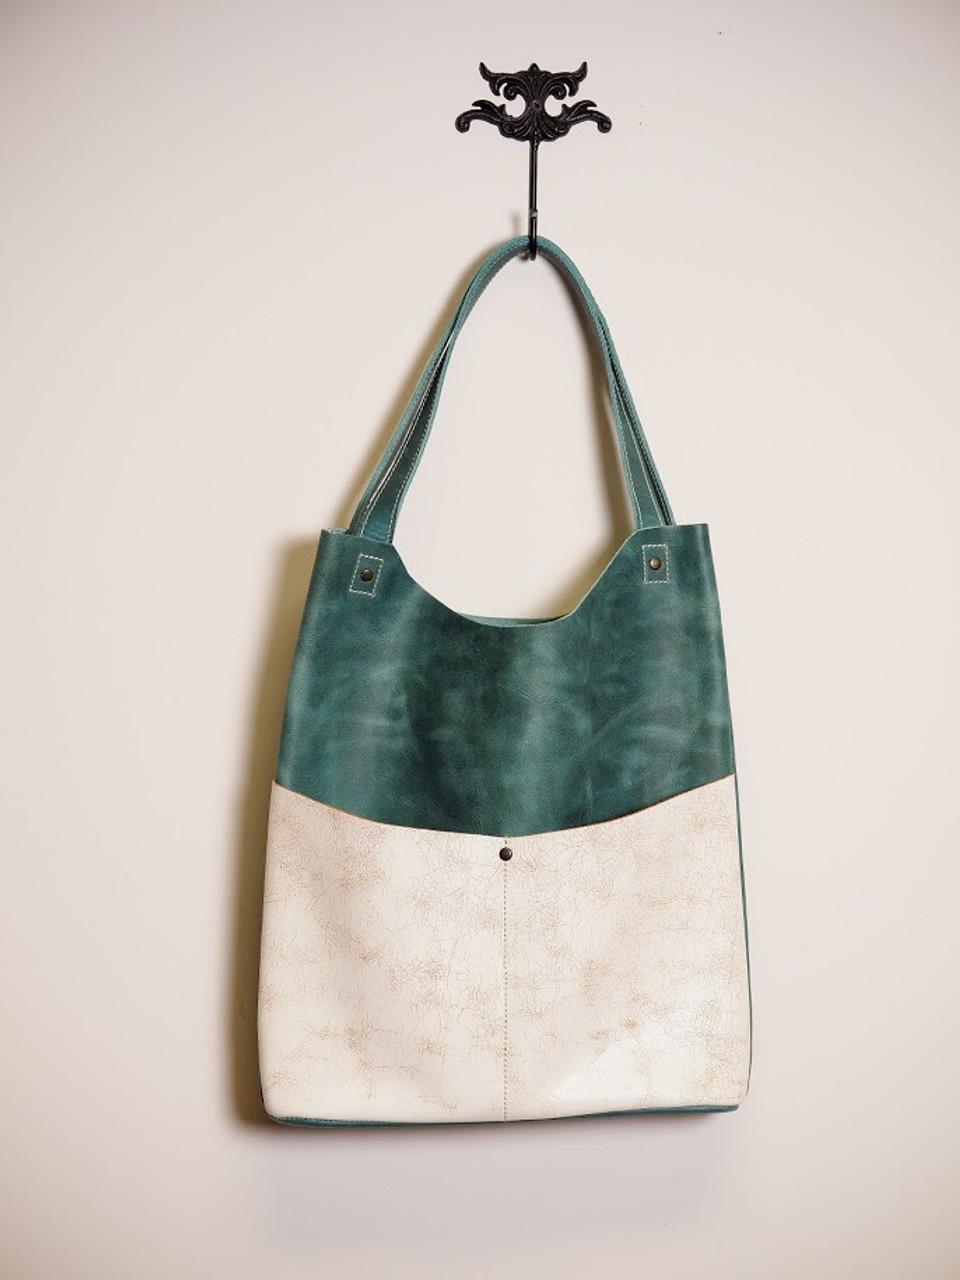 Exclusive Leather Tote in Turquoise & White